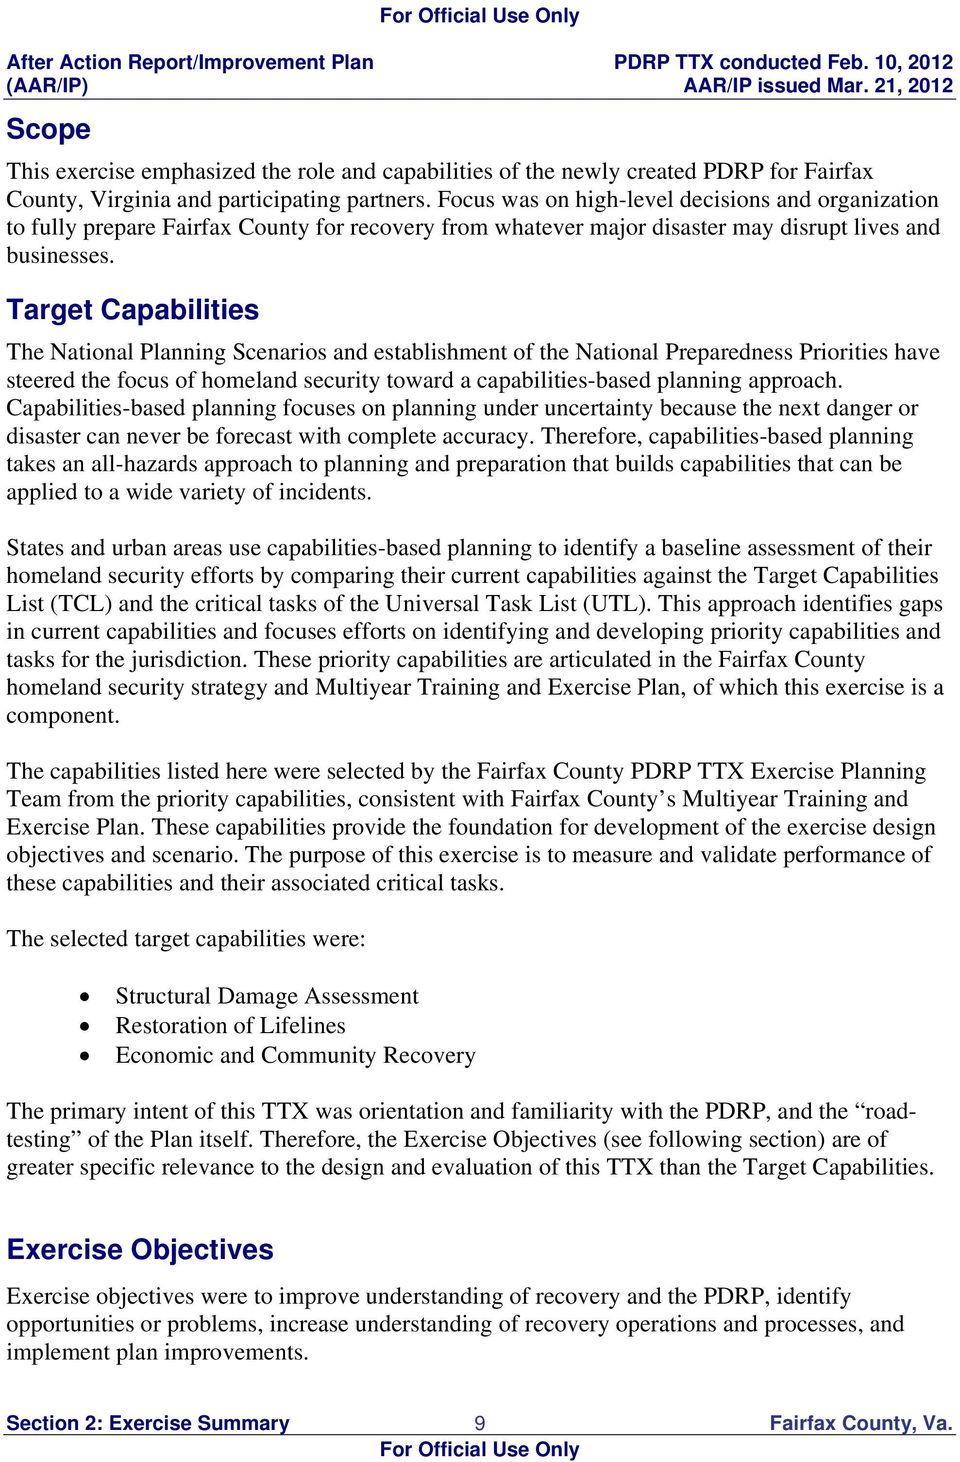 Target Capabilities The National Planning Scenarios and establishment of the National Preparedness Priorities have steered the focus of homeland security toward a capabilities-based planning approach.